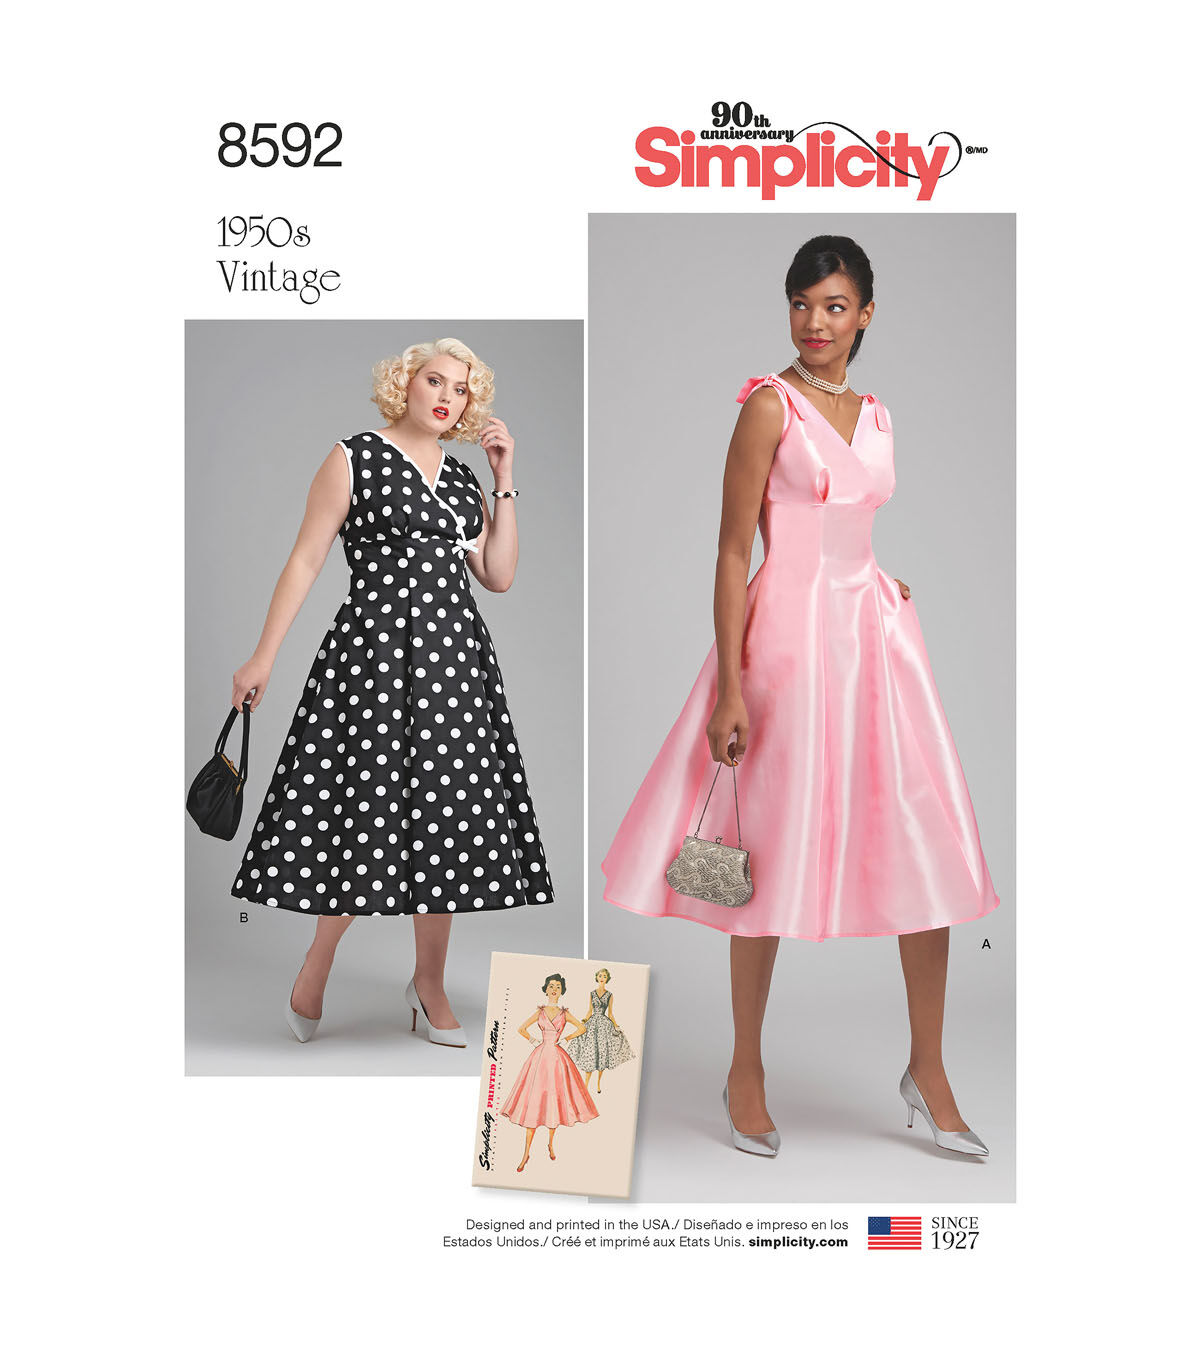 1950s Sewing Patterns | Dresses, Skirts, Tops, Mens 1950s Simplicity Pattern 8592 Misses/Womens Vintage Dress-Size BB (20W-28W) $7.49 AT vintagedancer.com